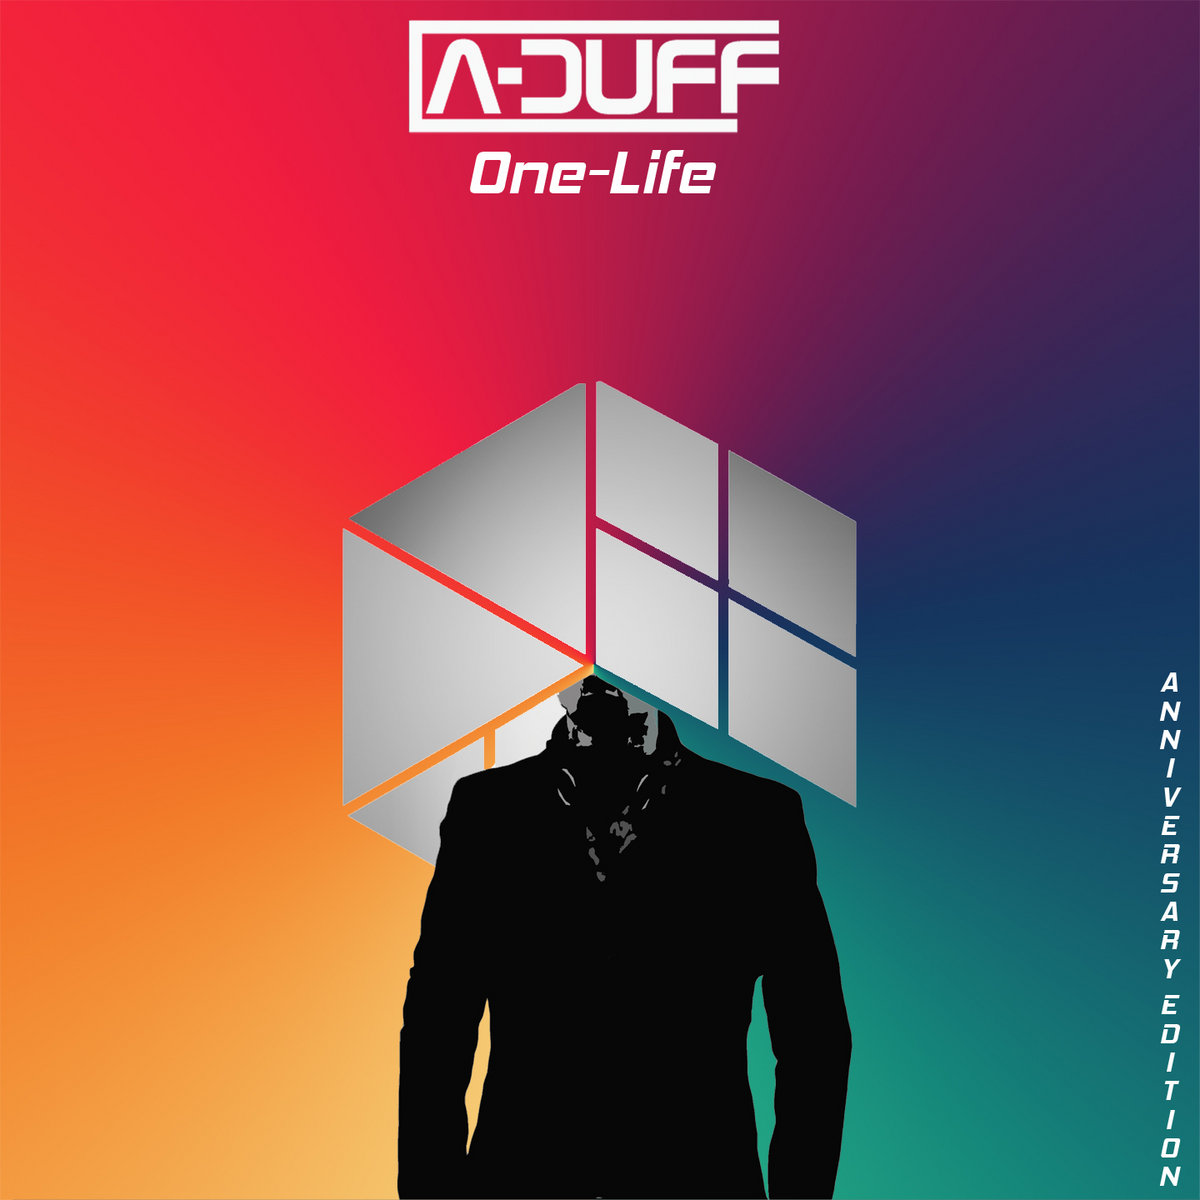 A-Duff Announces 'One Life: Anniversary Edition'